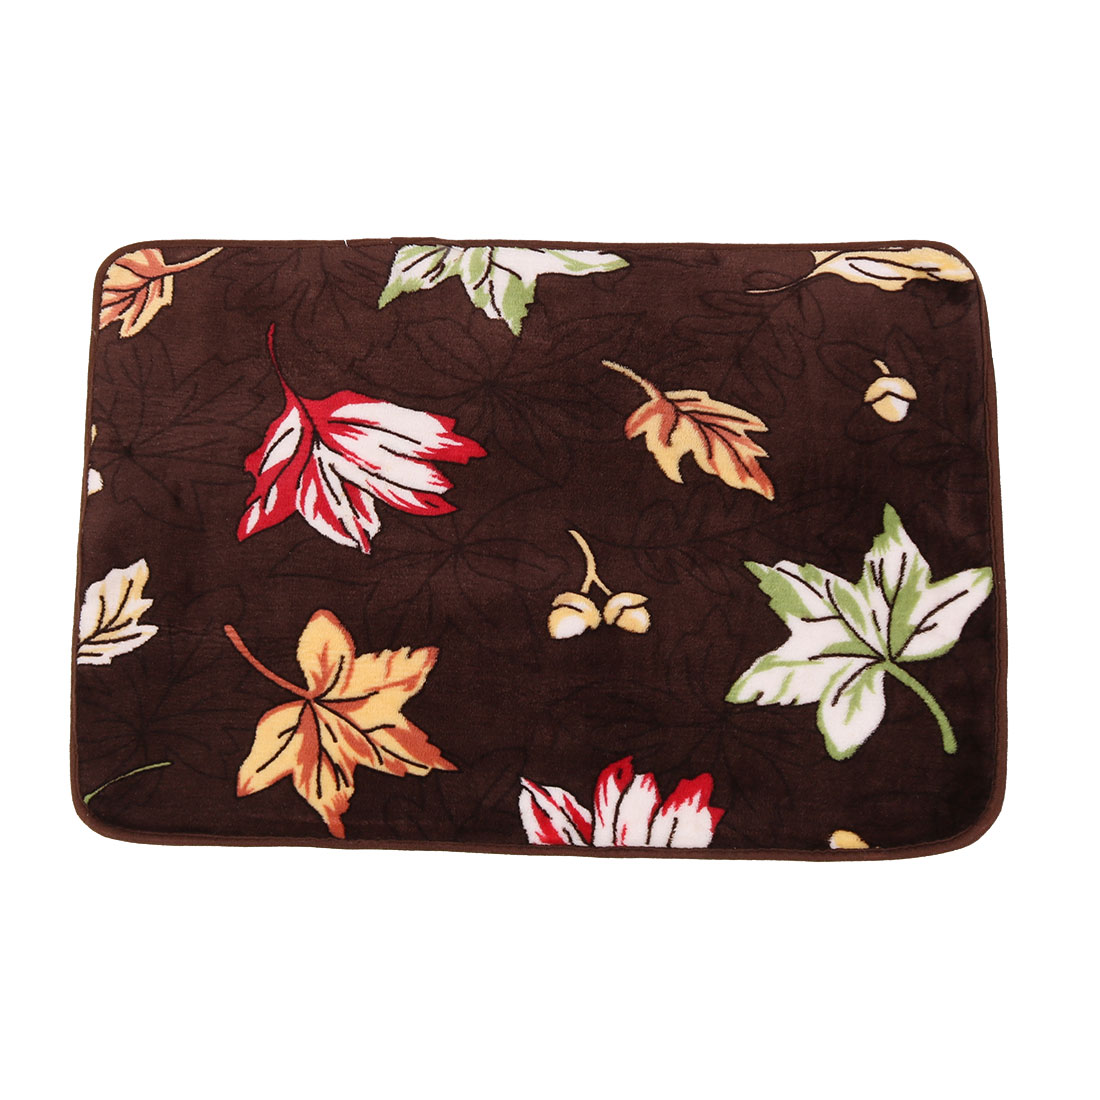 Household Coral Fleece Leaf Print Rectangle Washable Floor Carpet Rug Pad Doormat 60 x 40cm